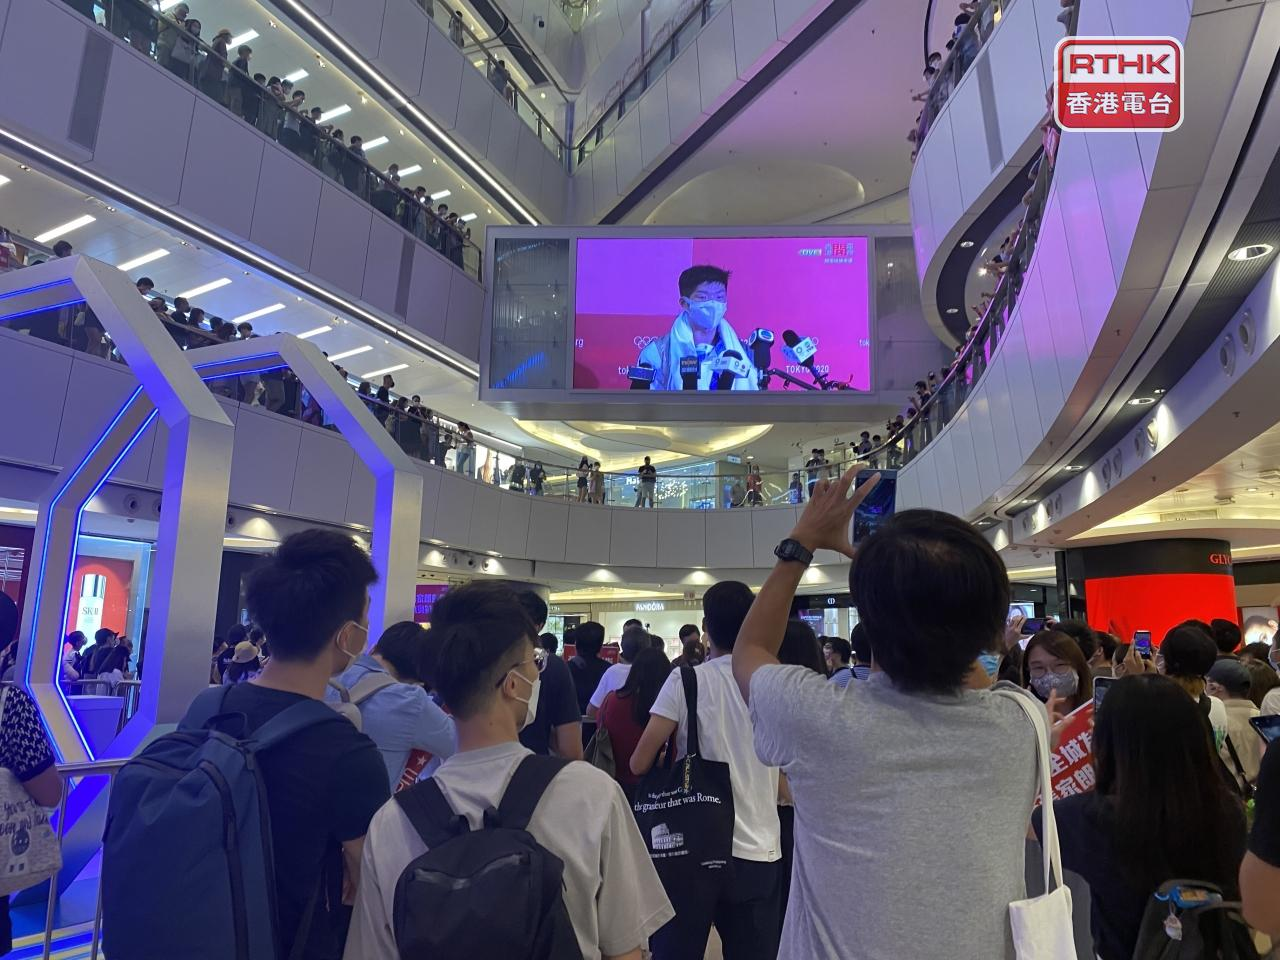 People watch an interview with Cheung Ka-long at the APM Mall after Monday's final. File photo: RTHK